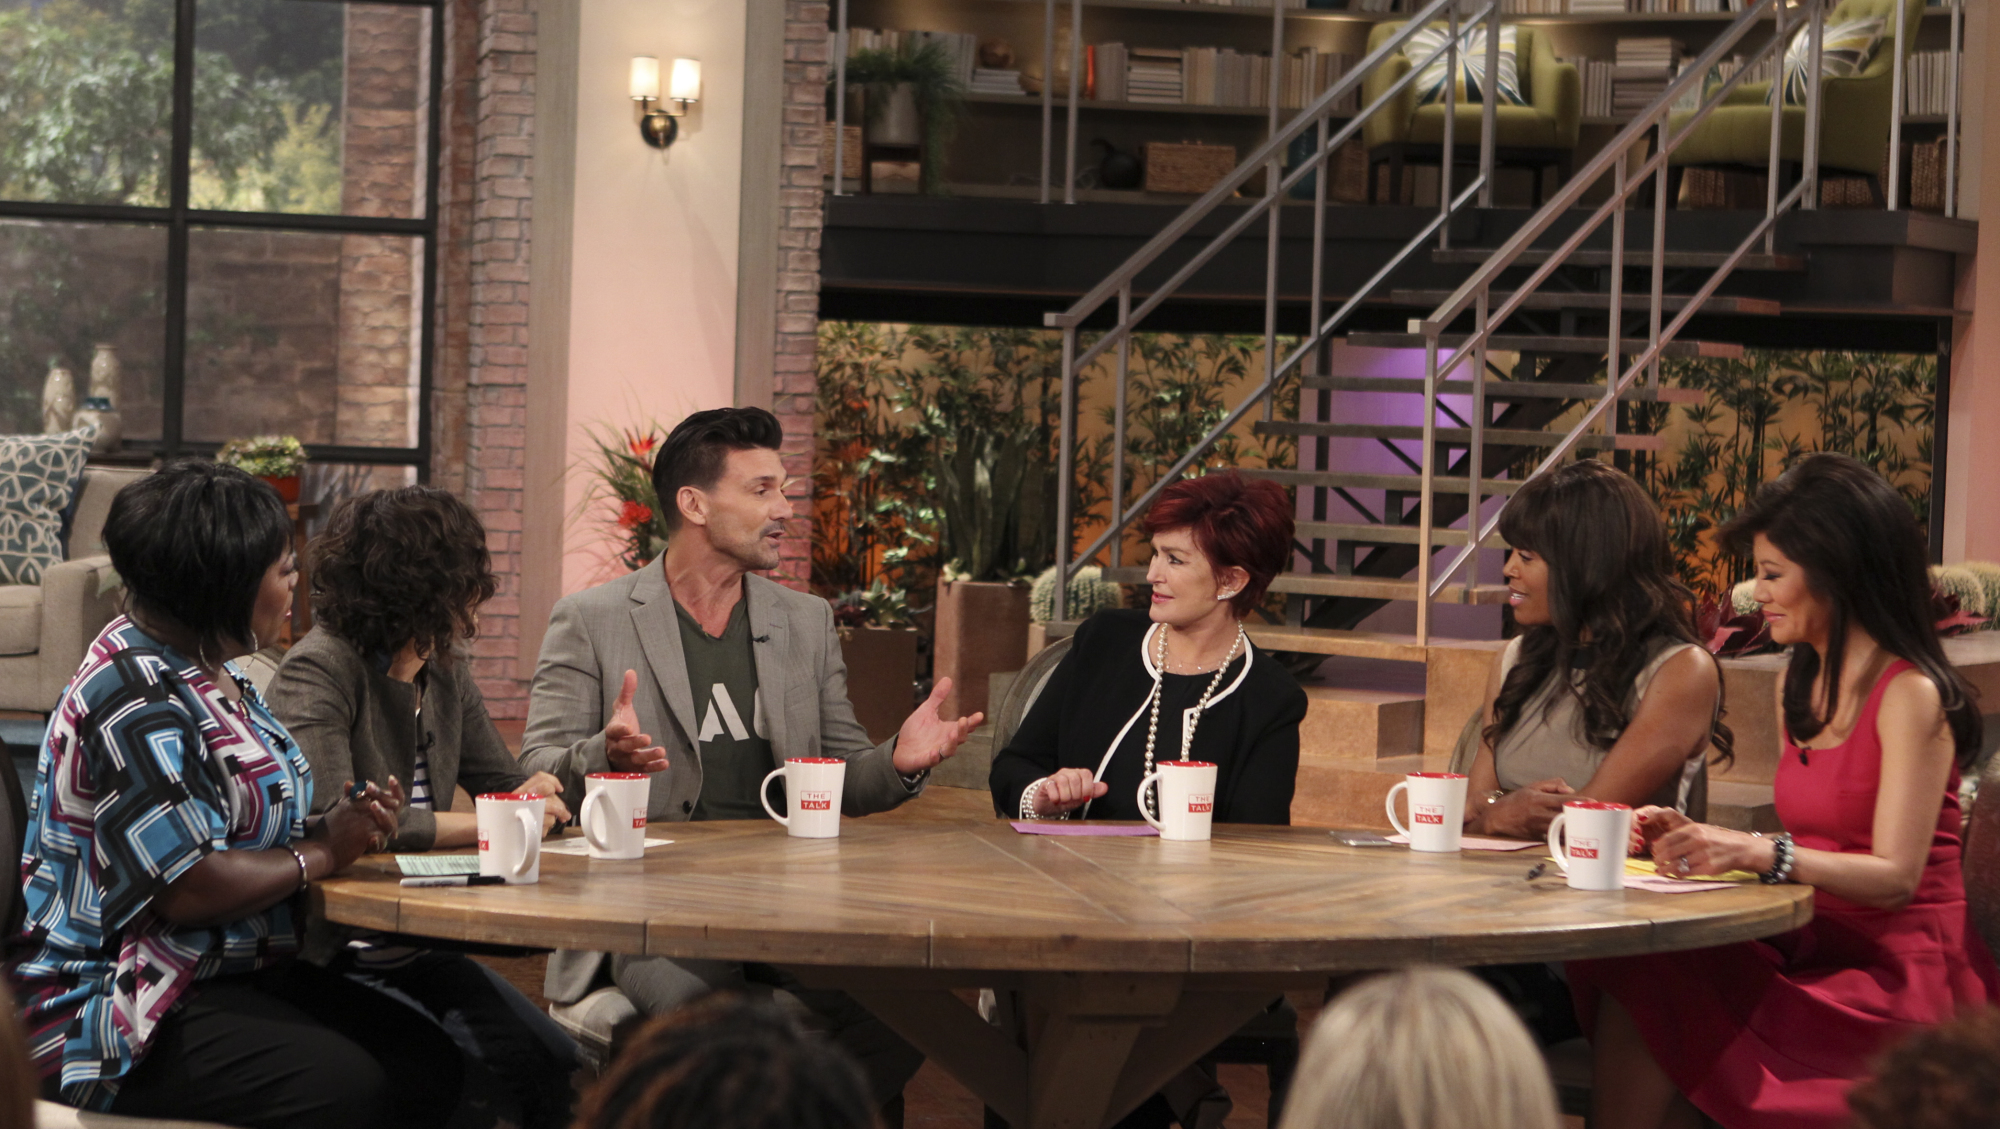 2. Frank Grillo spilling the beans on his new show,